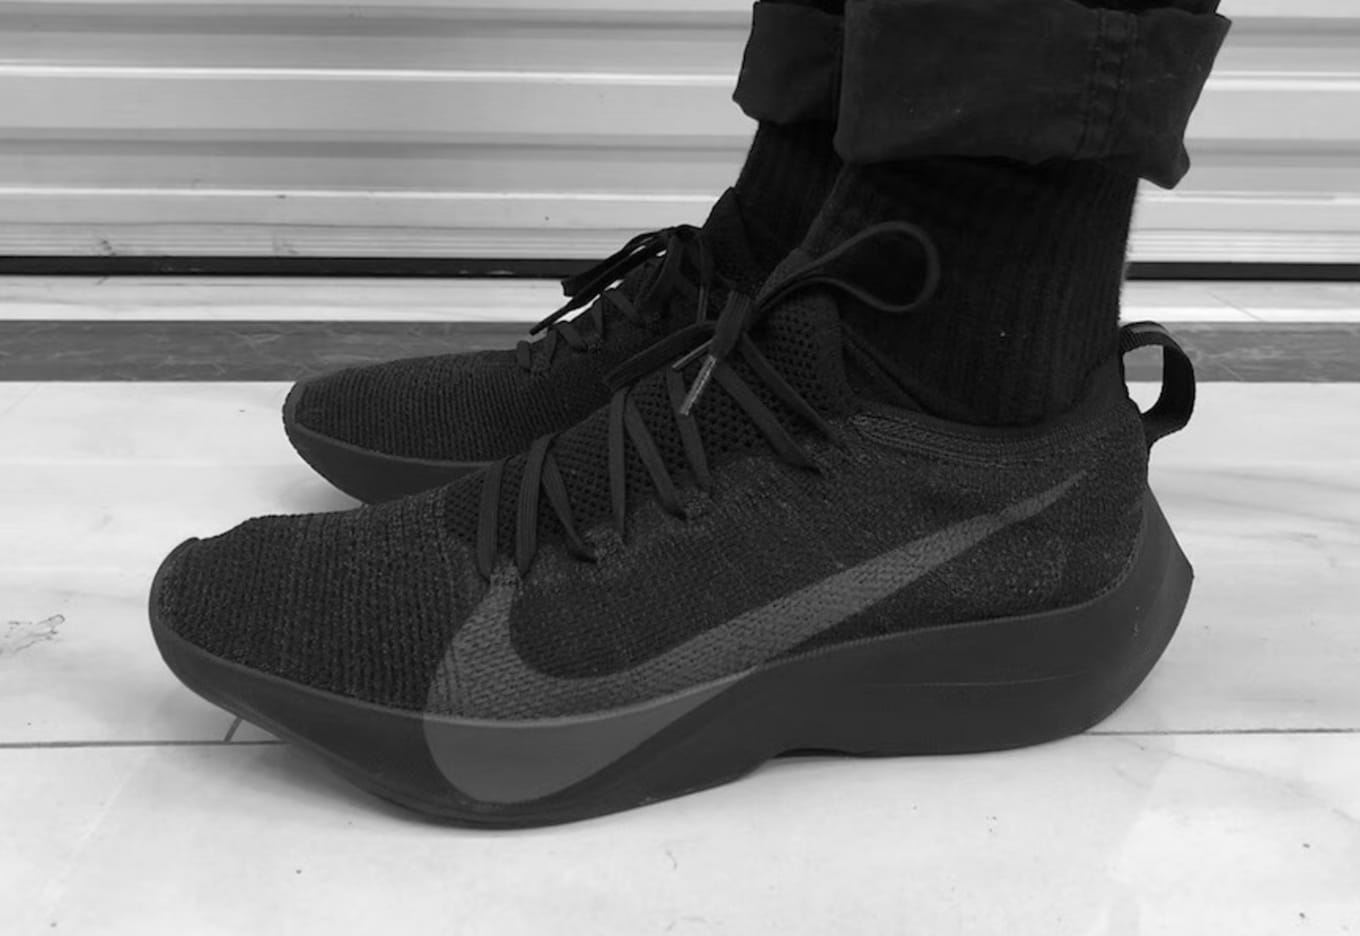 6409714e956d A takedown of the Nike Zoom VaporFly Elite.